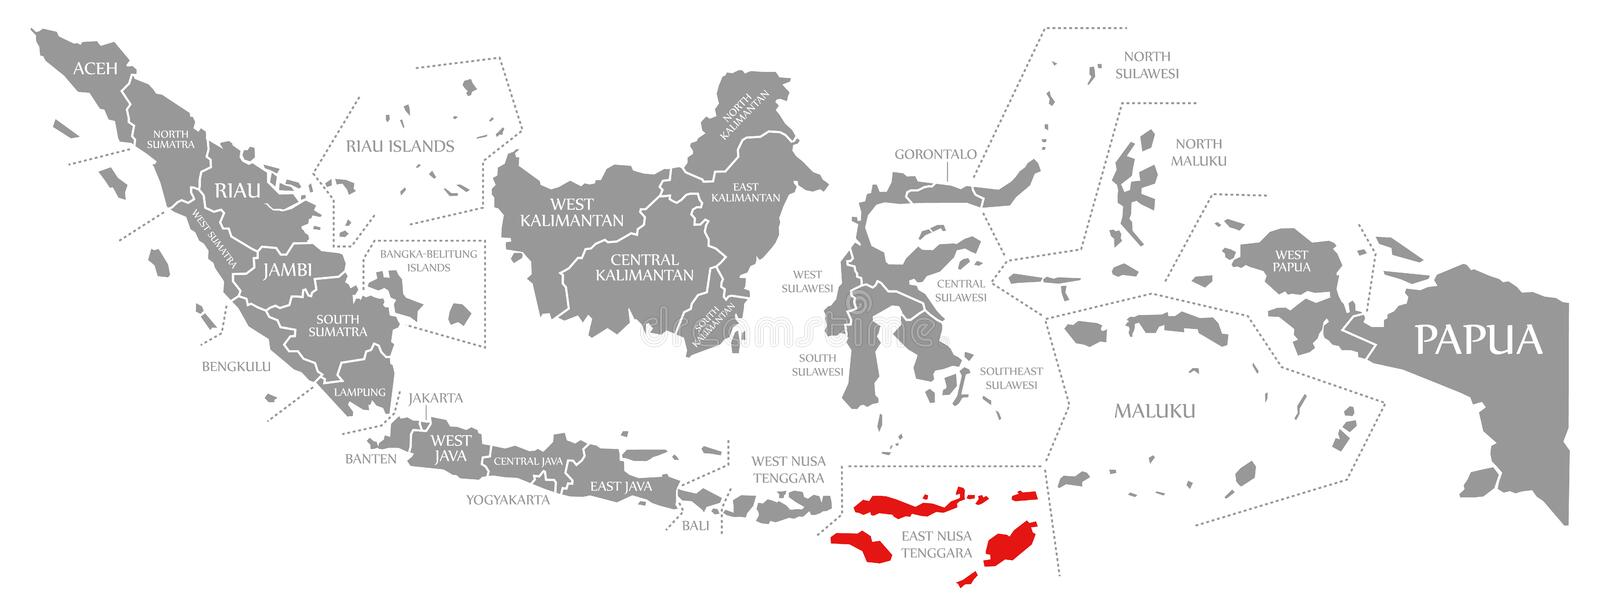 East Nusa Tenggara red op de kaart van Indonesië vector illustratie